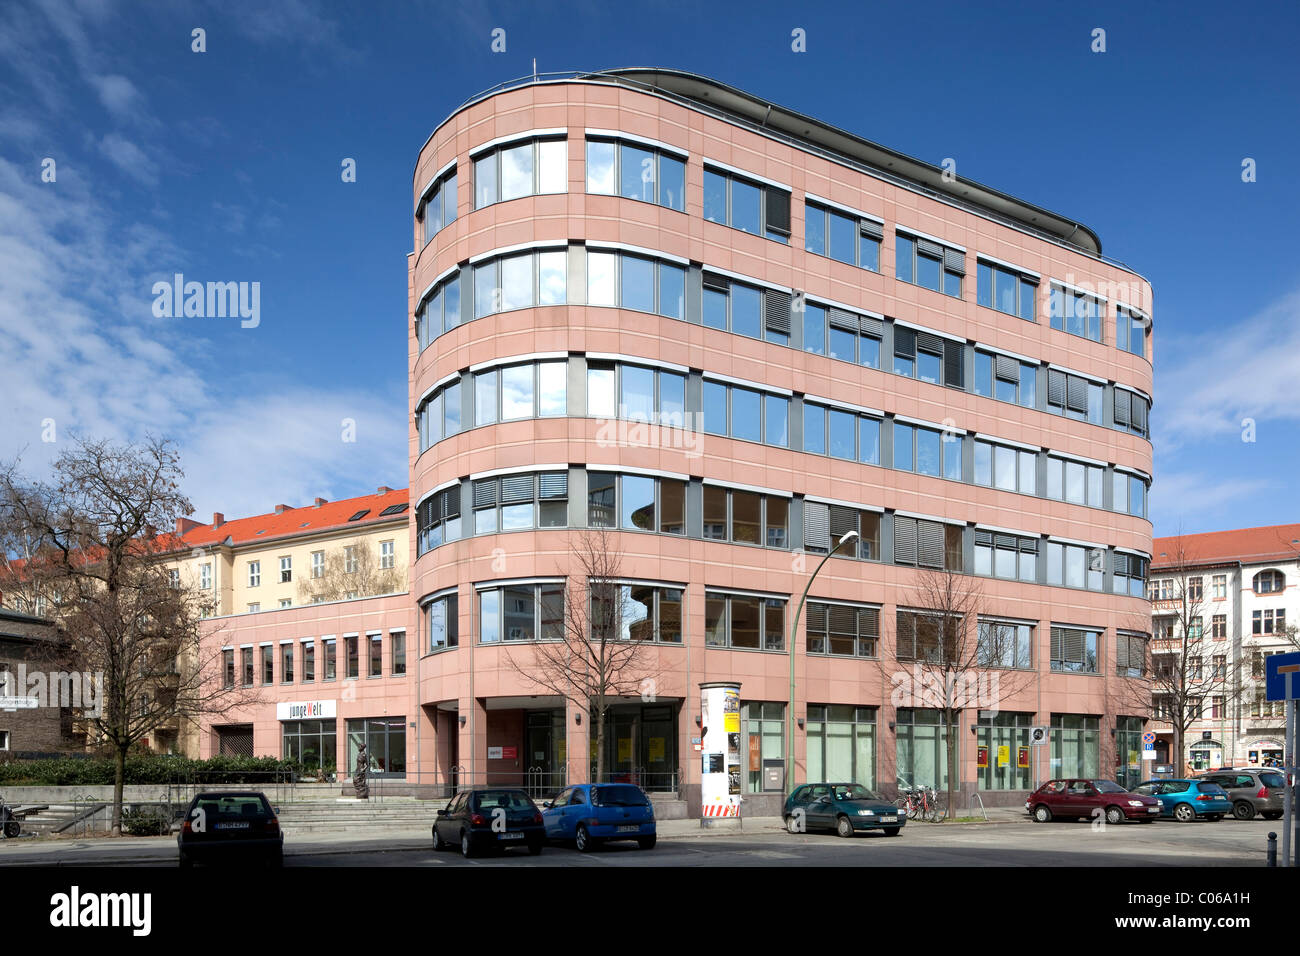 Office building, Torstrasse, editorial office of Junge Welt newspaper, Berlin-Mitte, Berlin, Germany, Europe - Stock Image